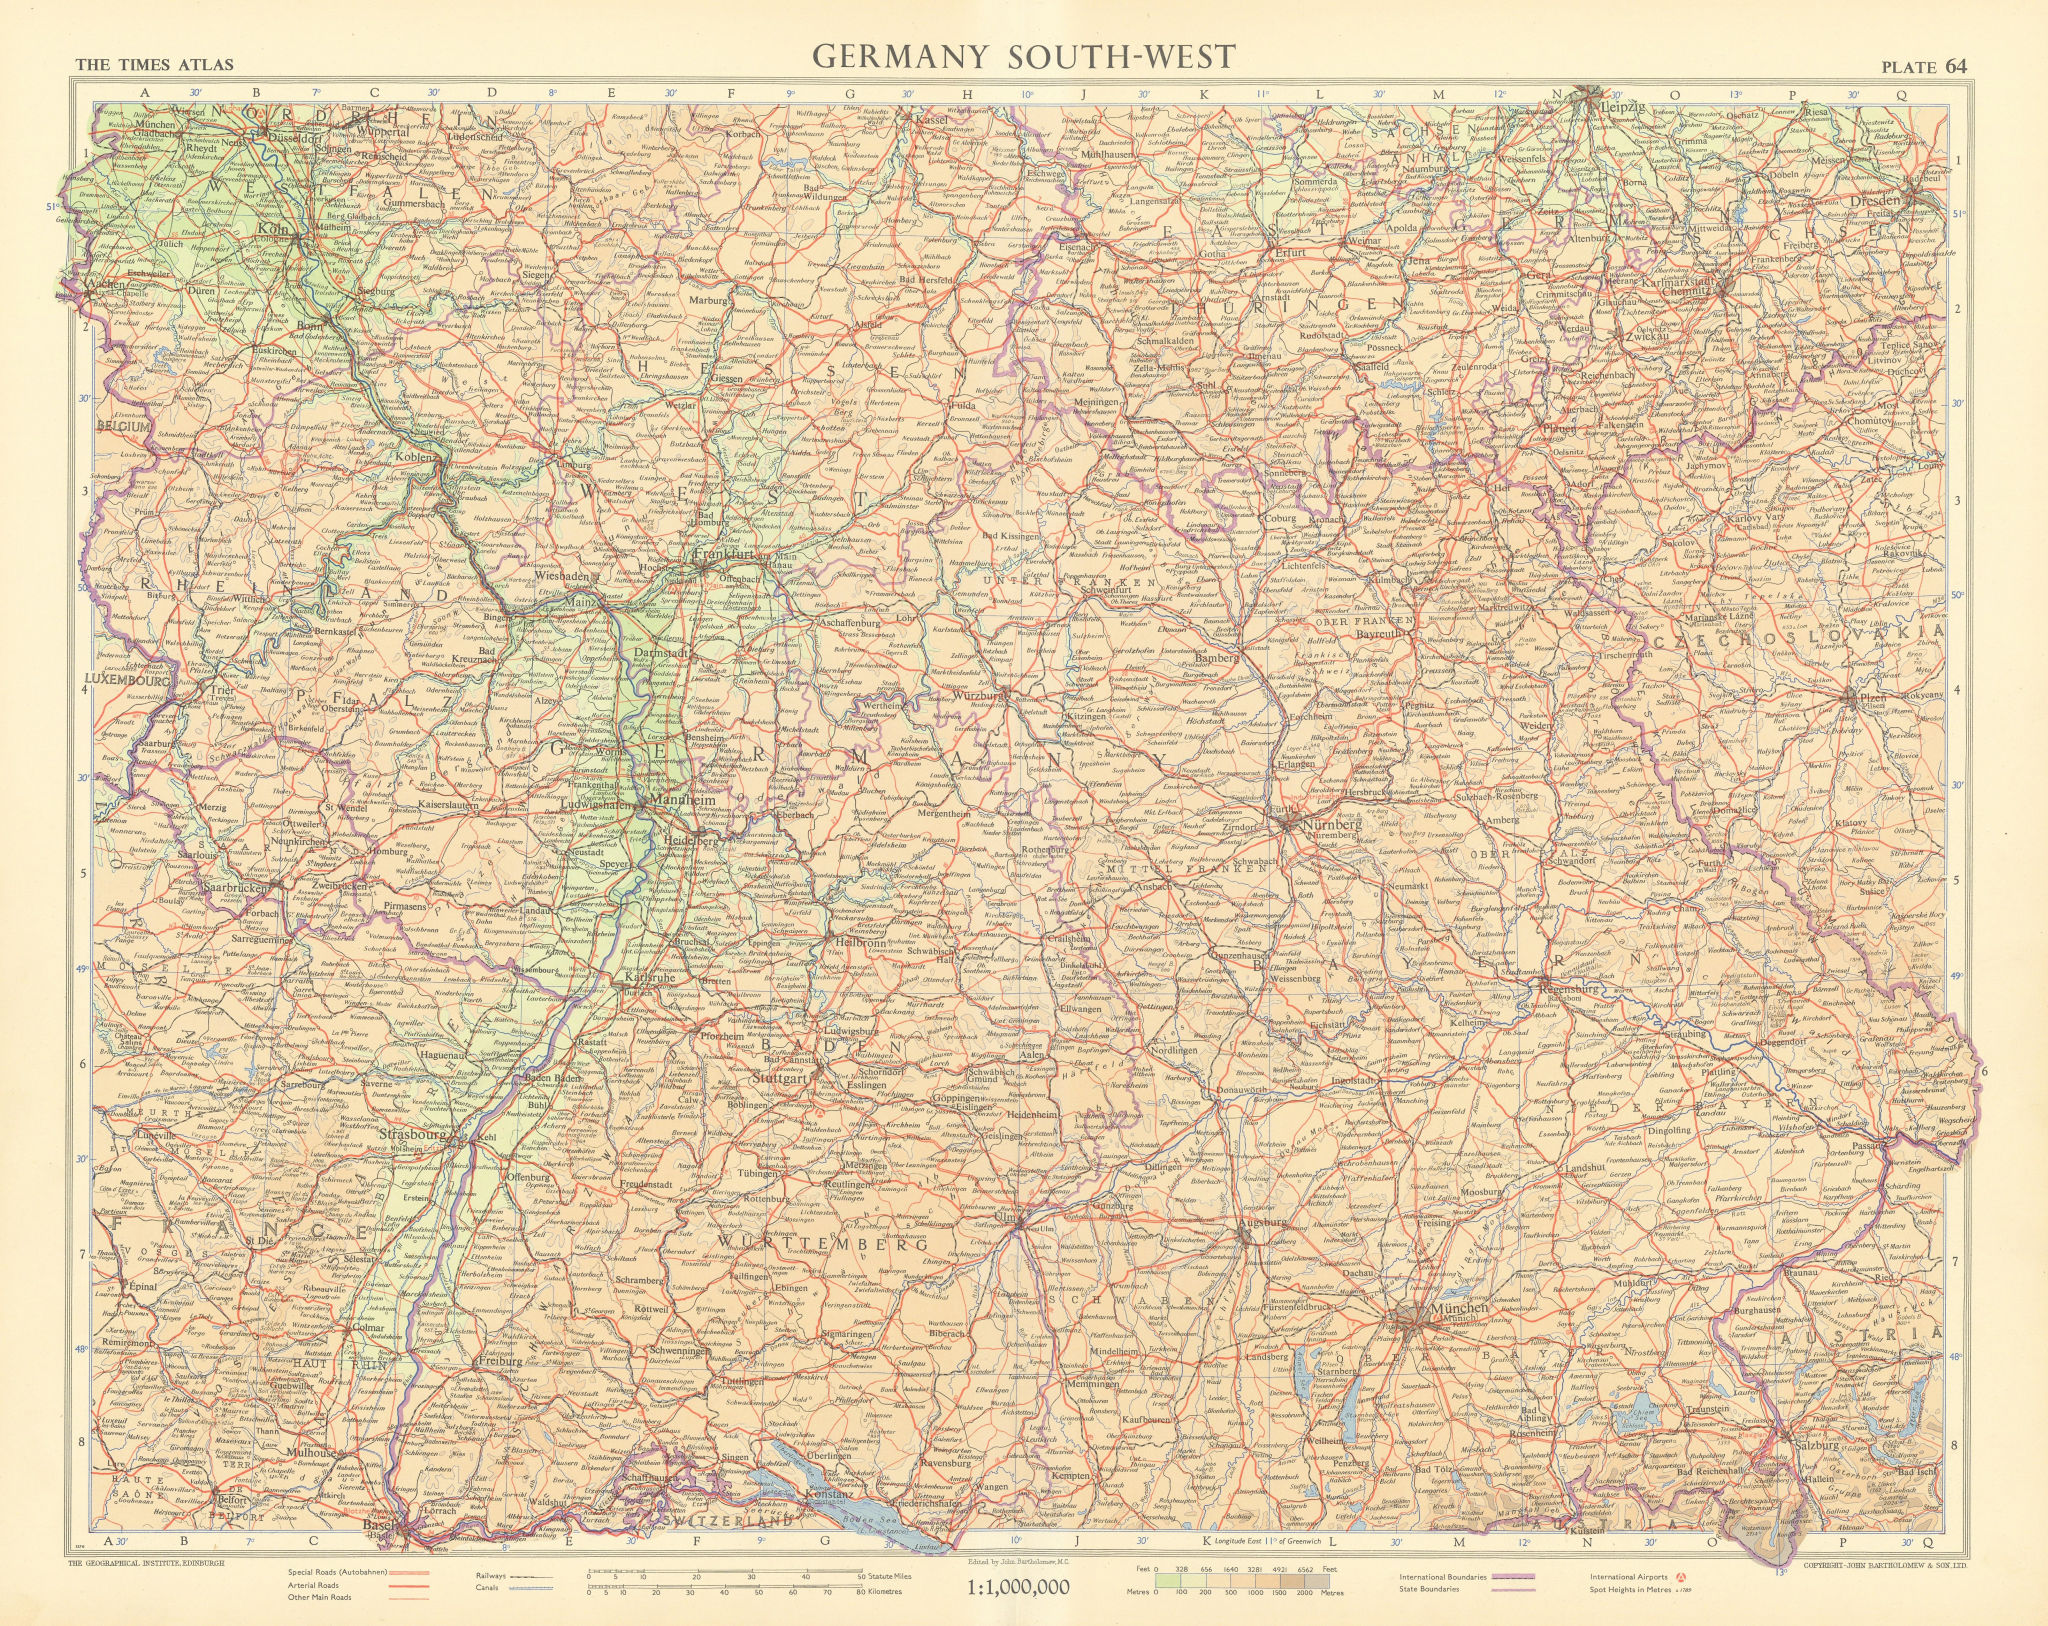 Germany south-west. Bavaria Bayern & Baden-Wurttemberg. TIMES 1955 old map